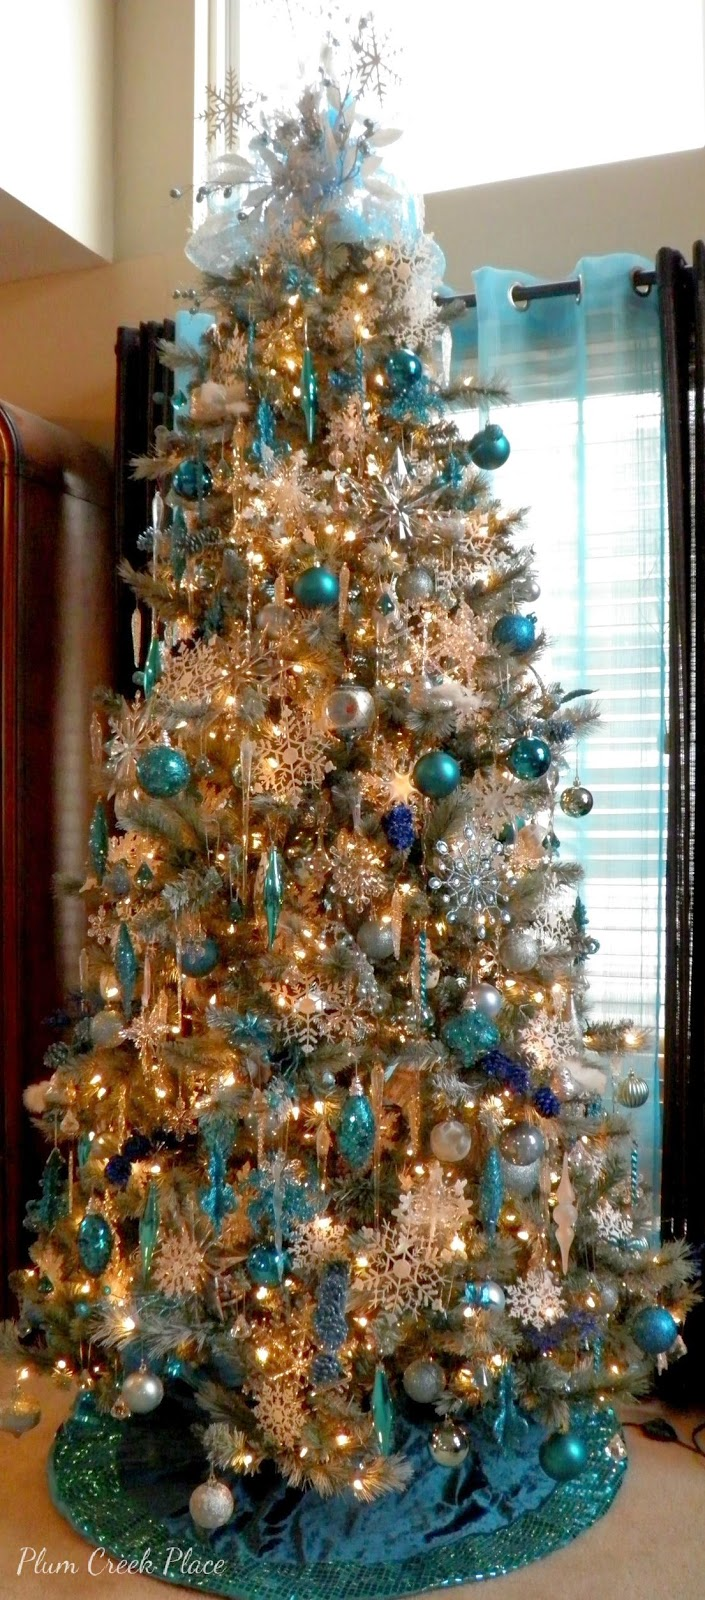 Teal and aqua snowflake Christmas tree